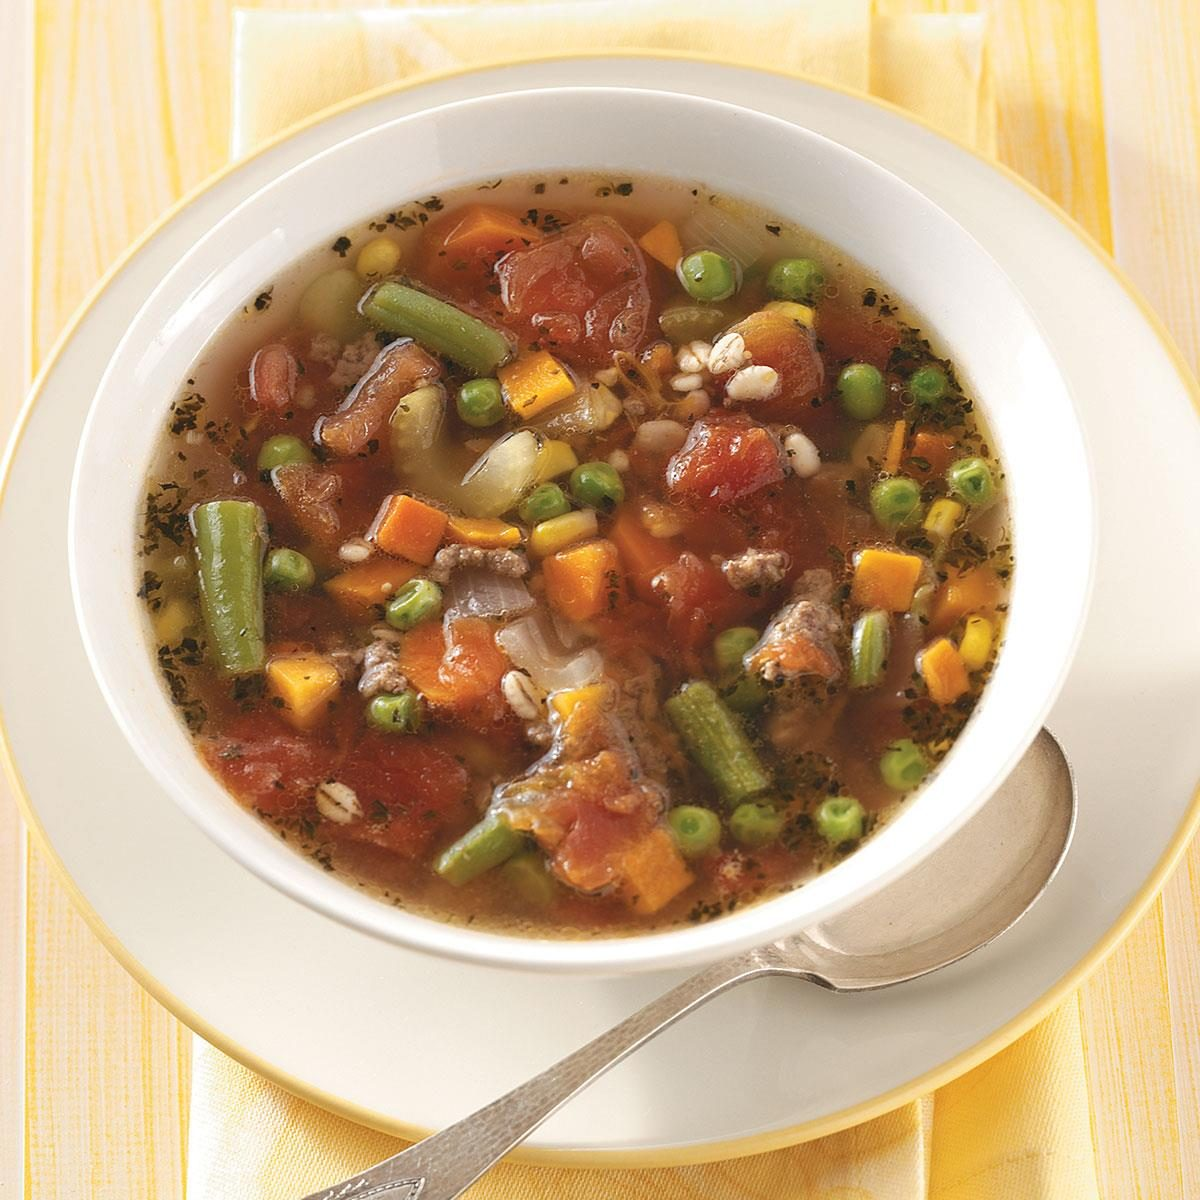 Day 29: Hearty Vegetable Barley Soup